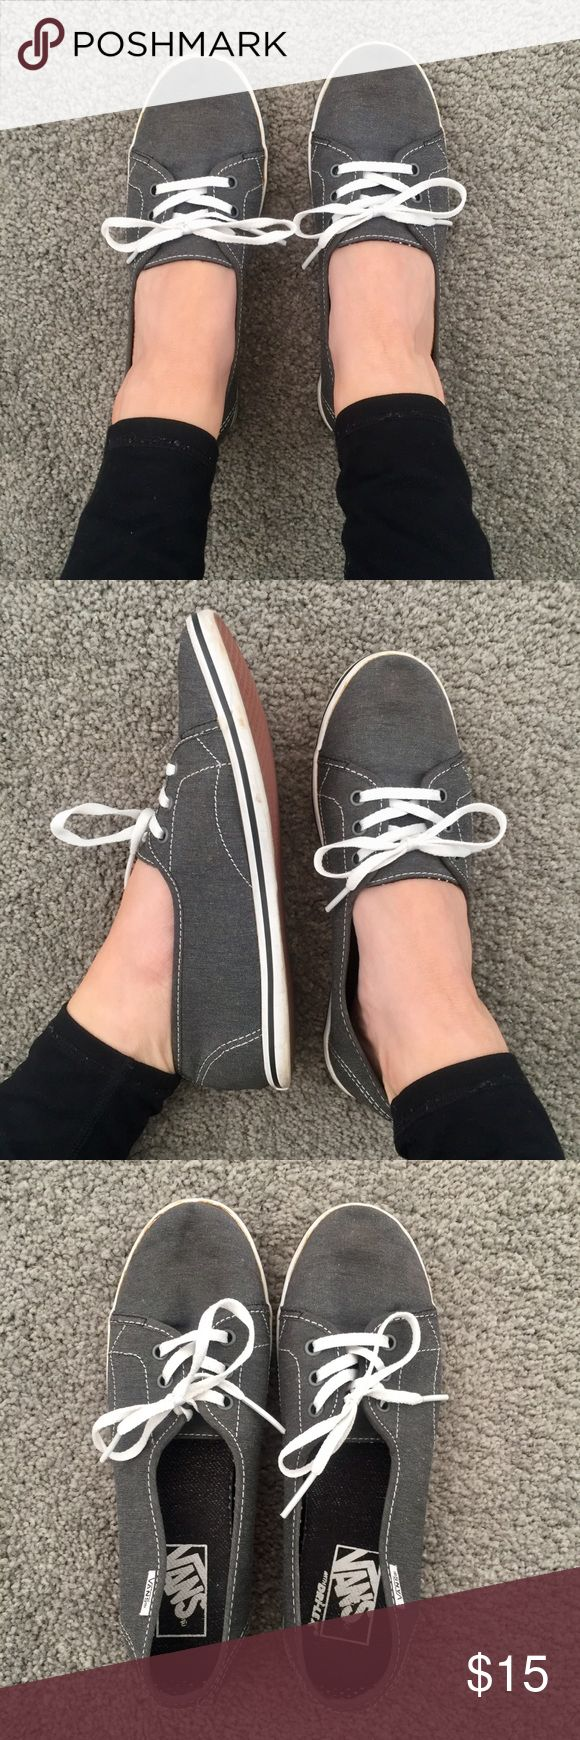 Vans boat shoes Adorable slip-on Vans boat style shoes, similar to the Palisades style. Excellent used condition. Slight discoloration on the sole from wear (shown). Vans Shoes